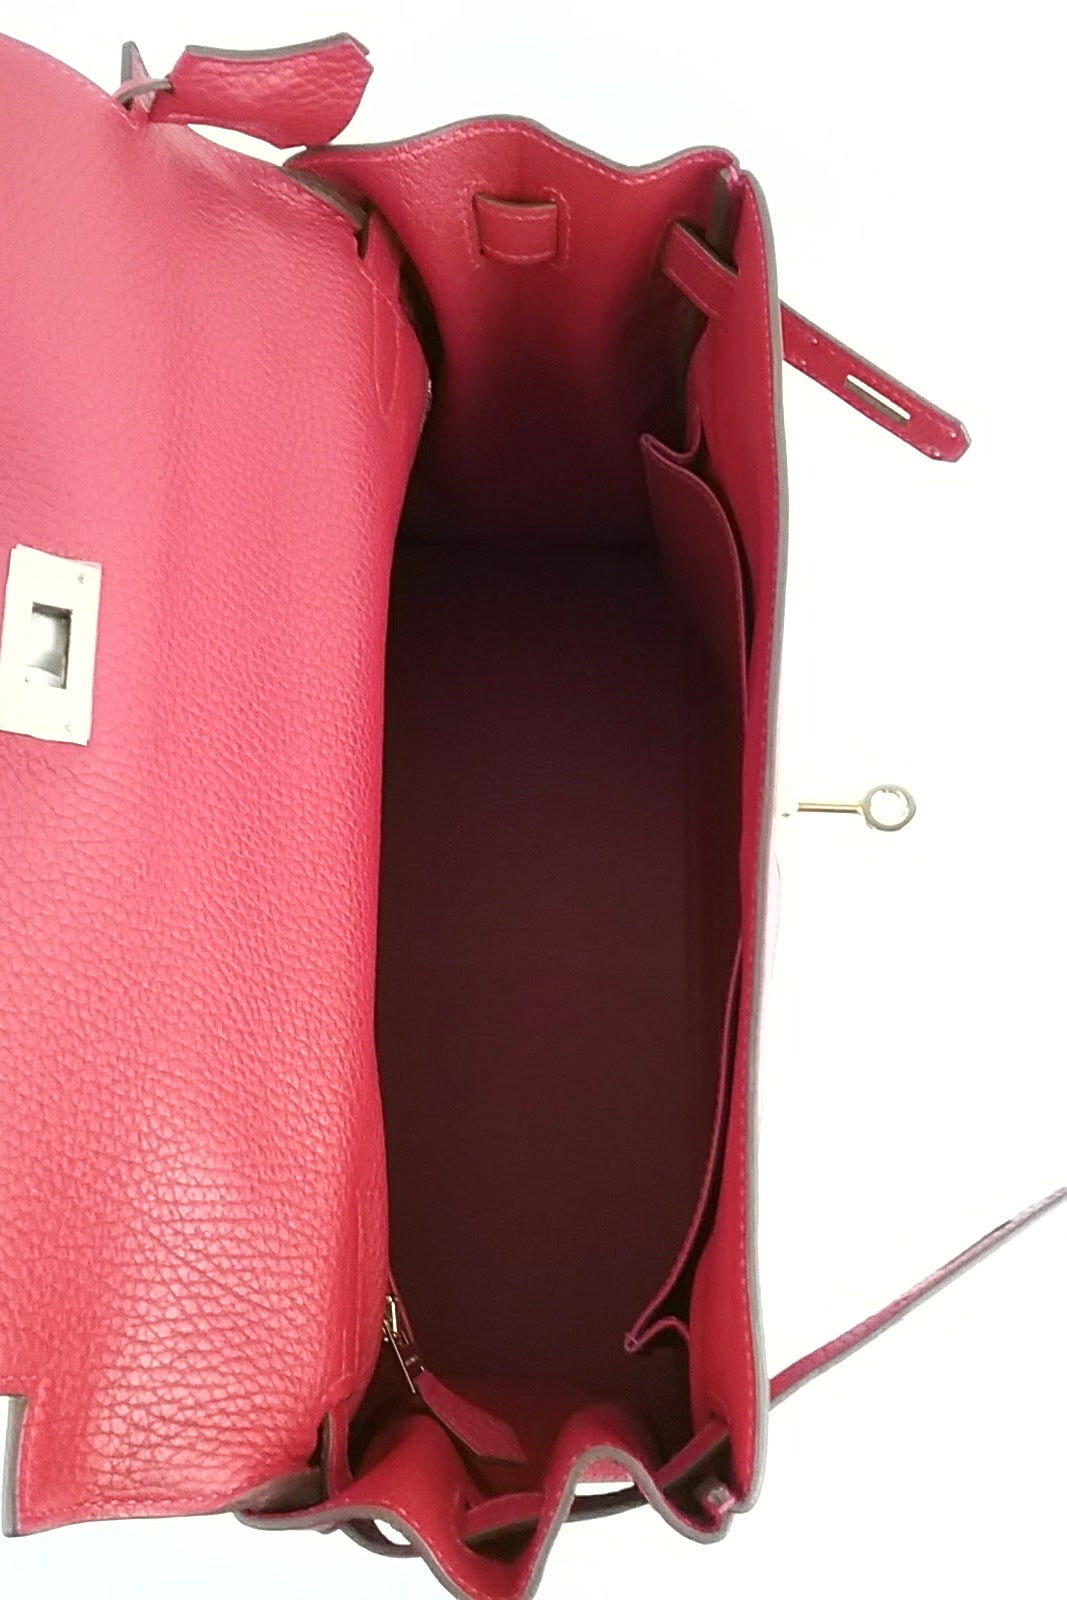 Clemence Rouge Casaque Kelly 32 Bag GHW